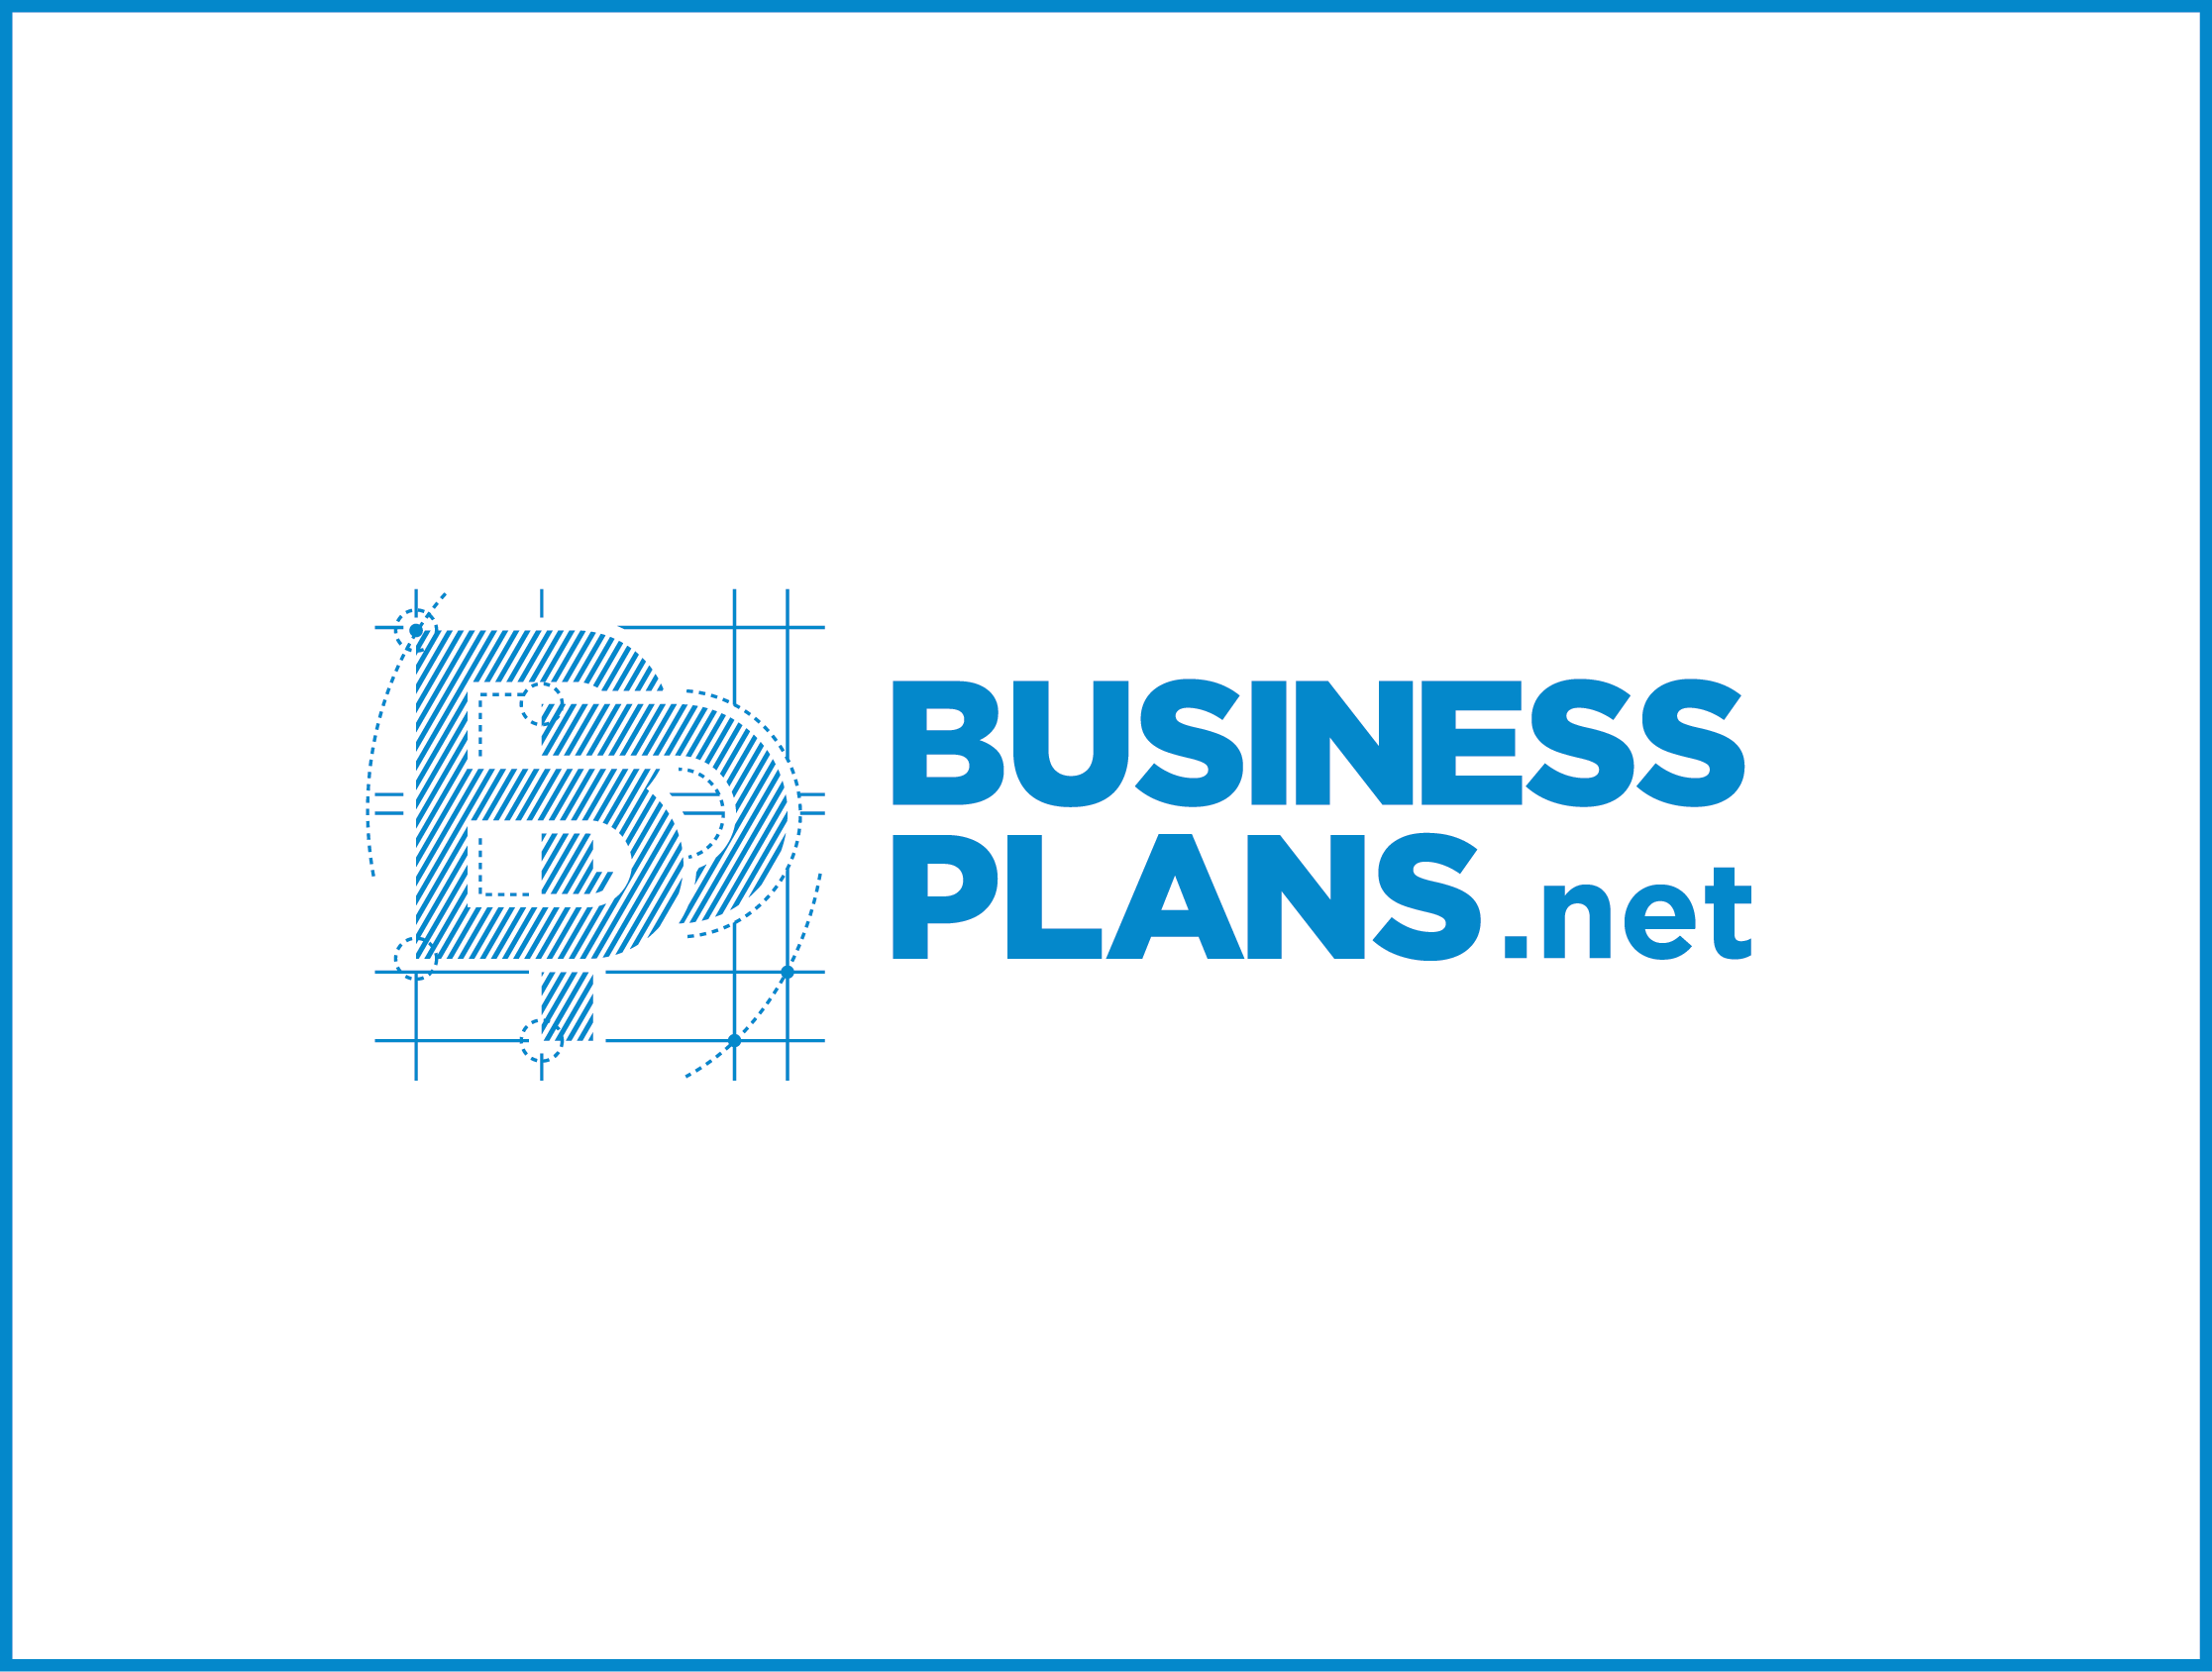 Image of Business Plan Logo